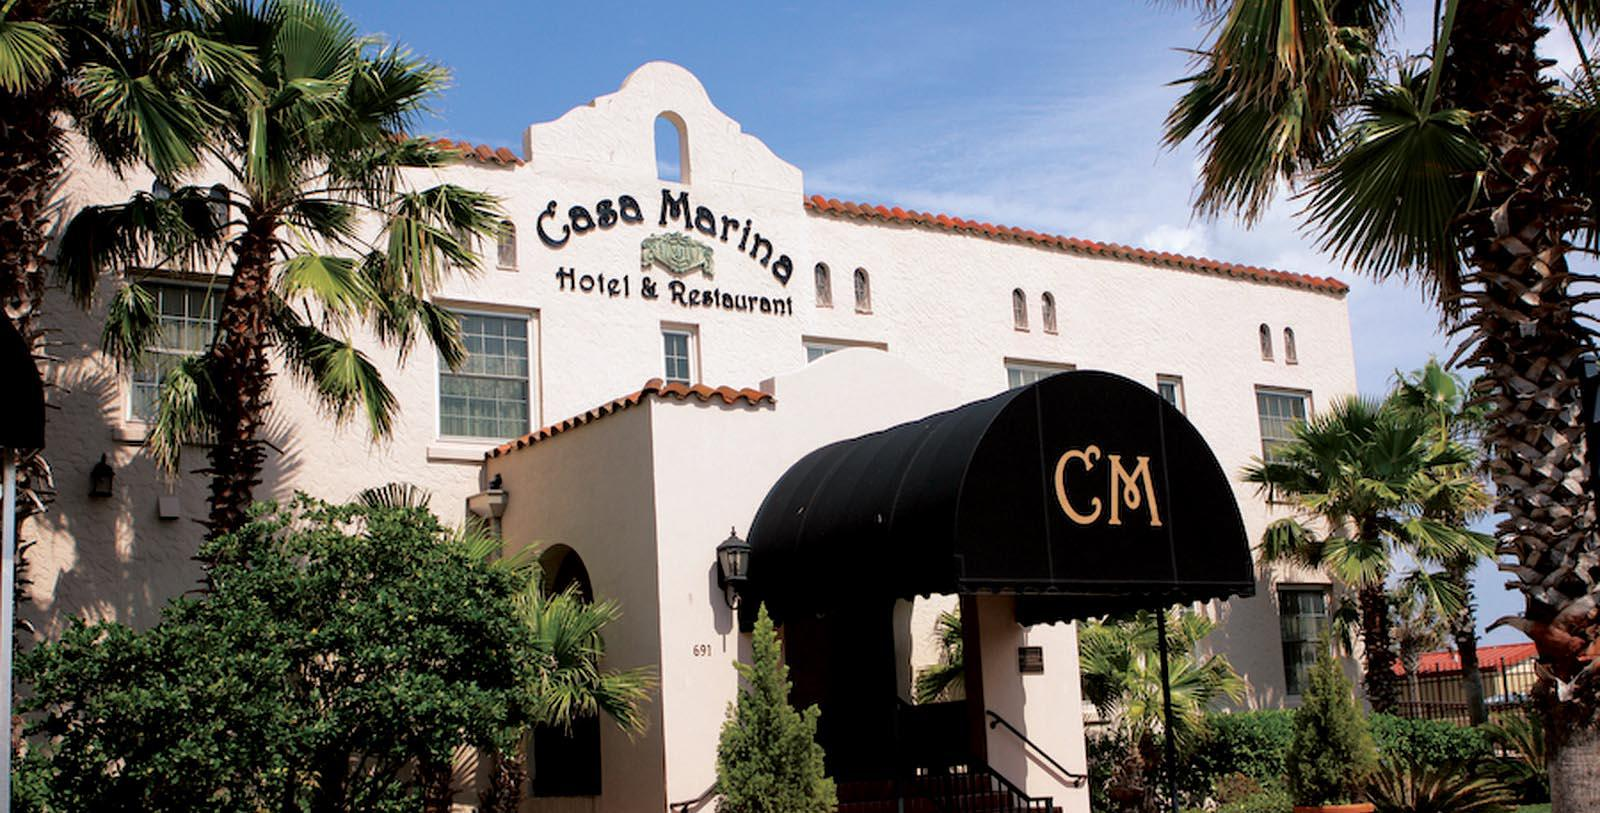 Historic Hotels In Jacksonville Beach Florida Casa Marina Hotel And Restaurant